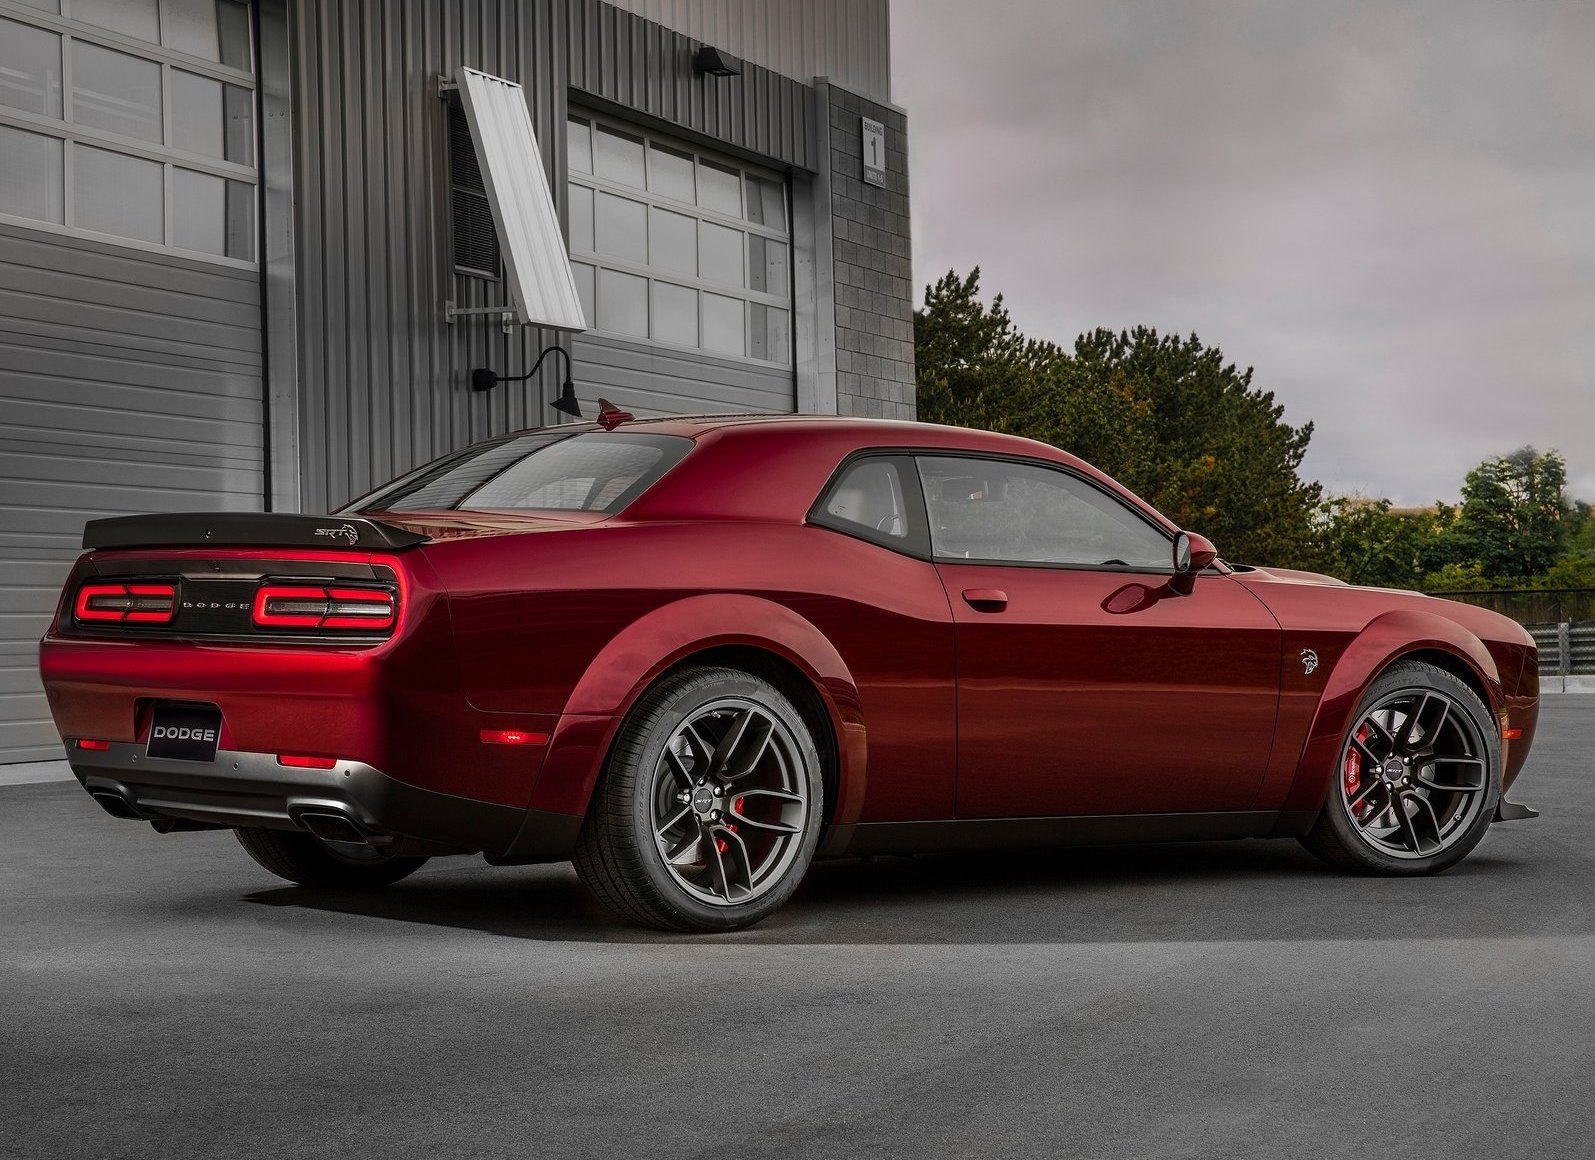 2018 Dodge Challenger SRT Hellcat Widebody Rear 3/4